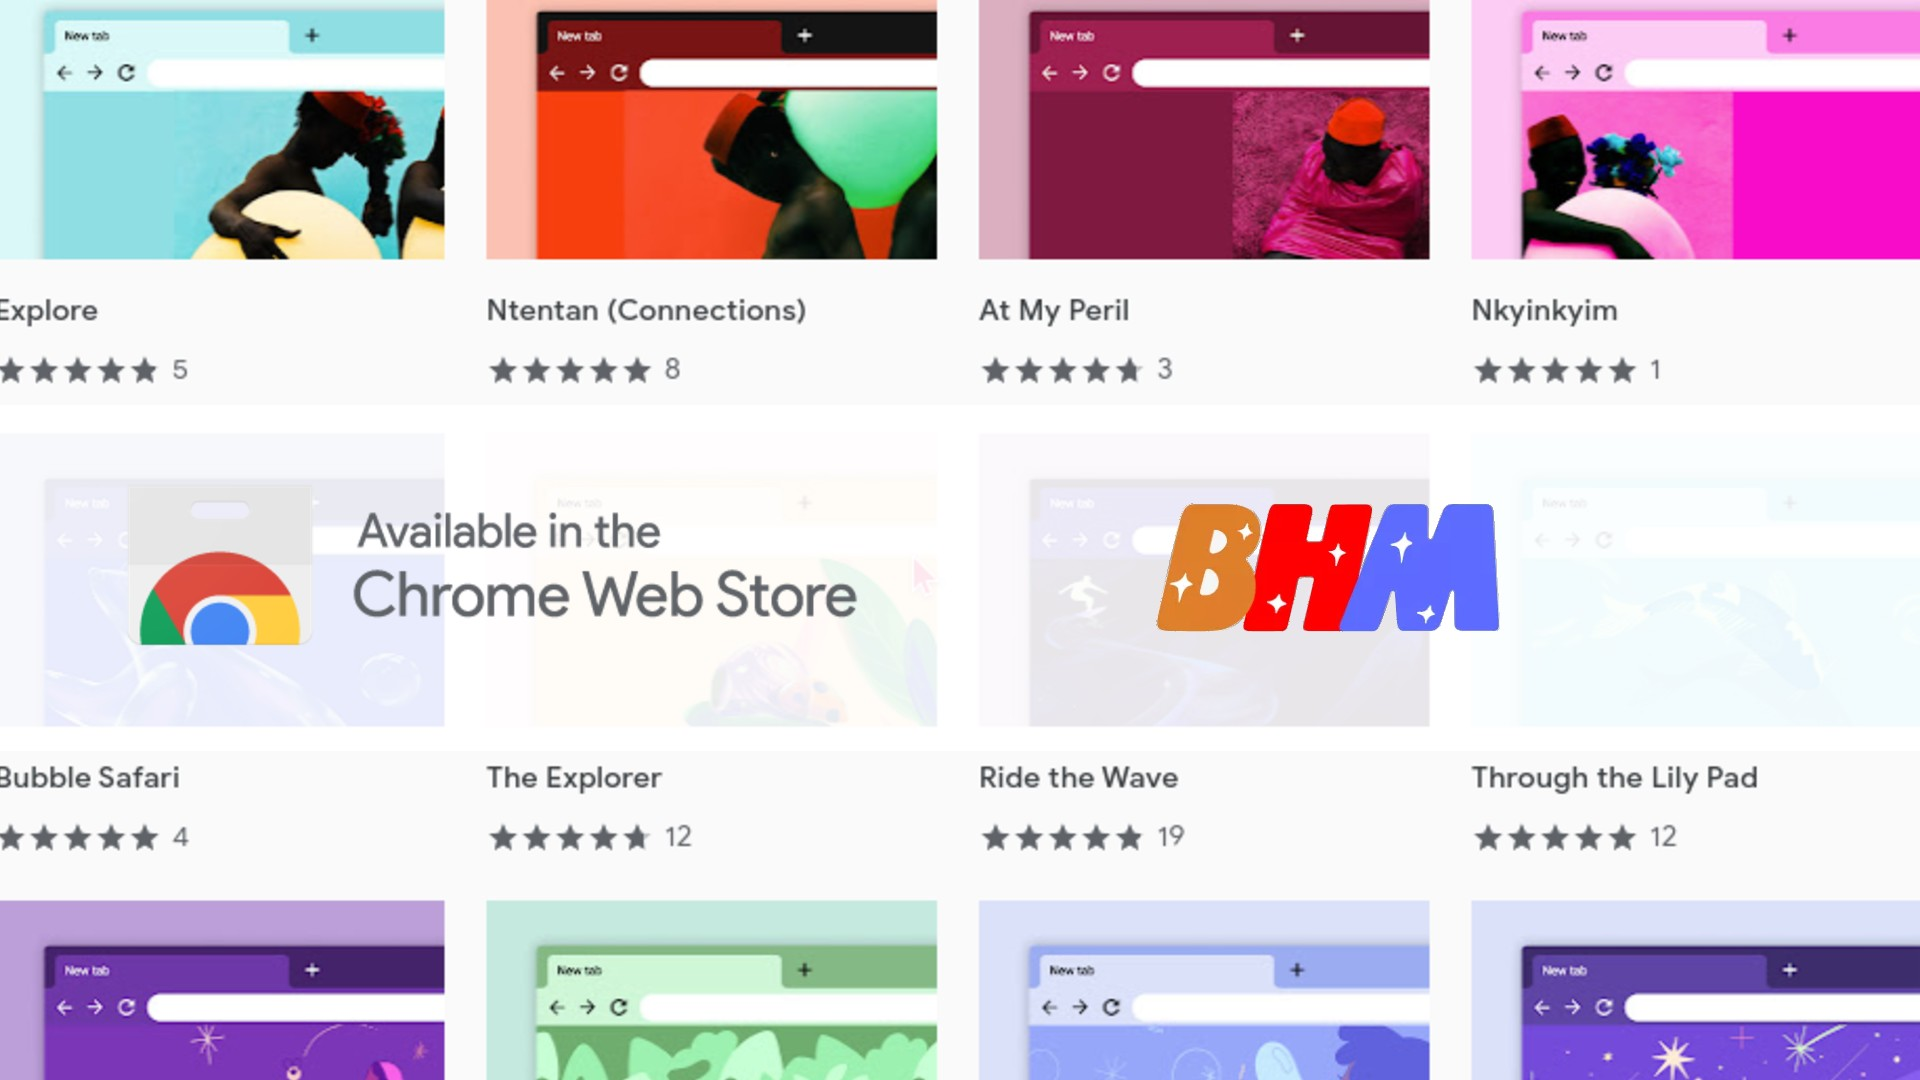 Google Celebrates Black History Month with New Chrome Themes